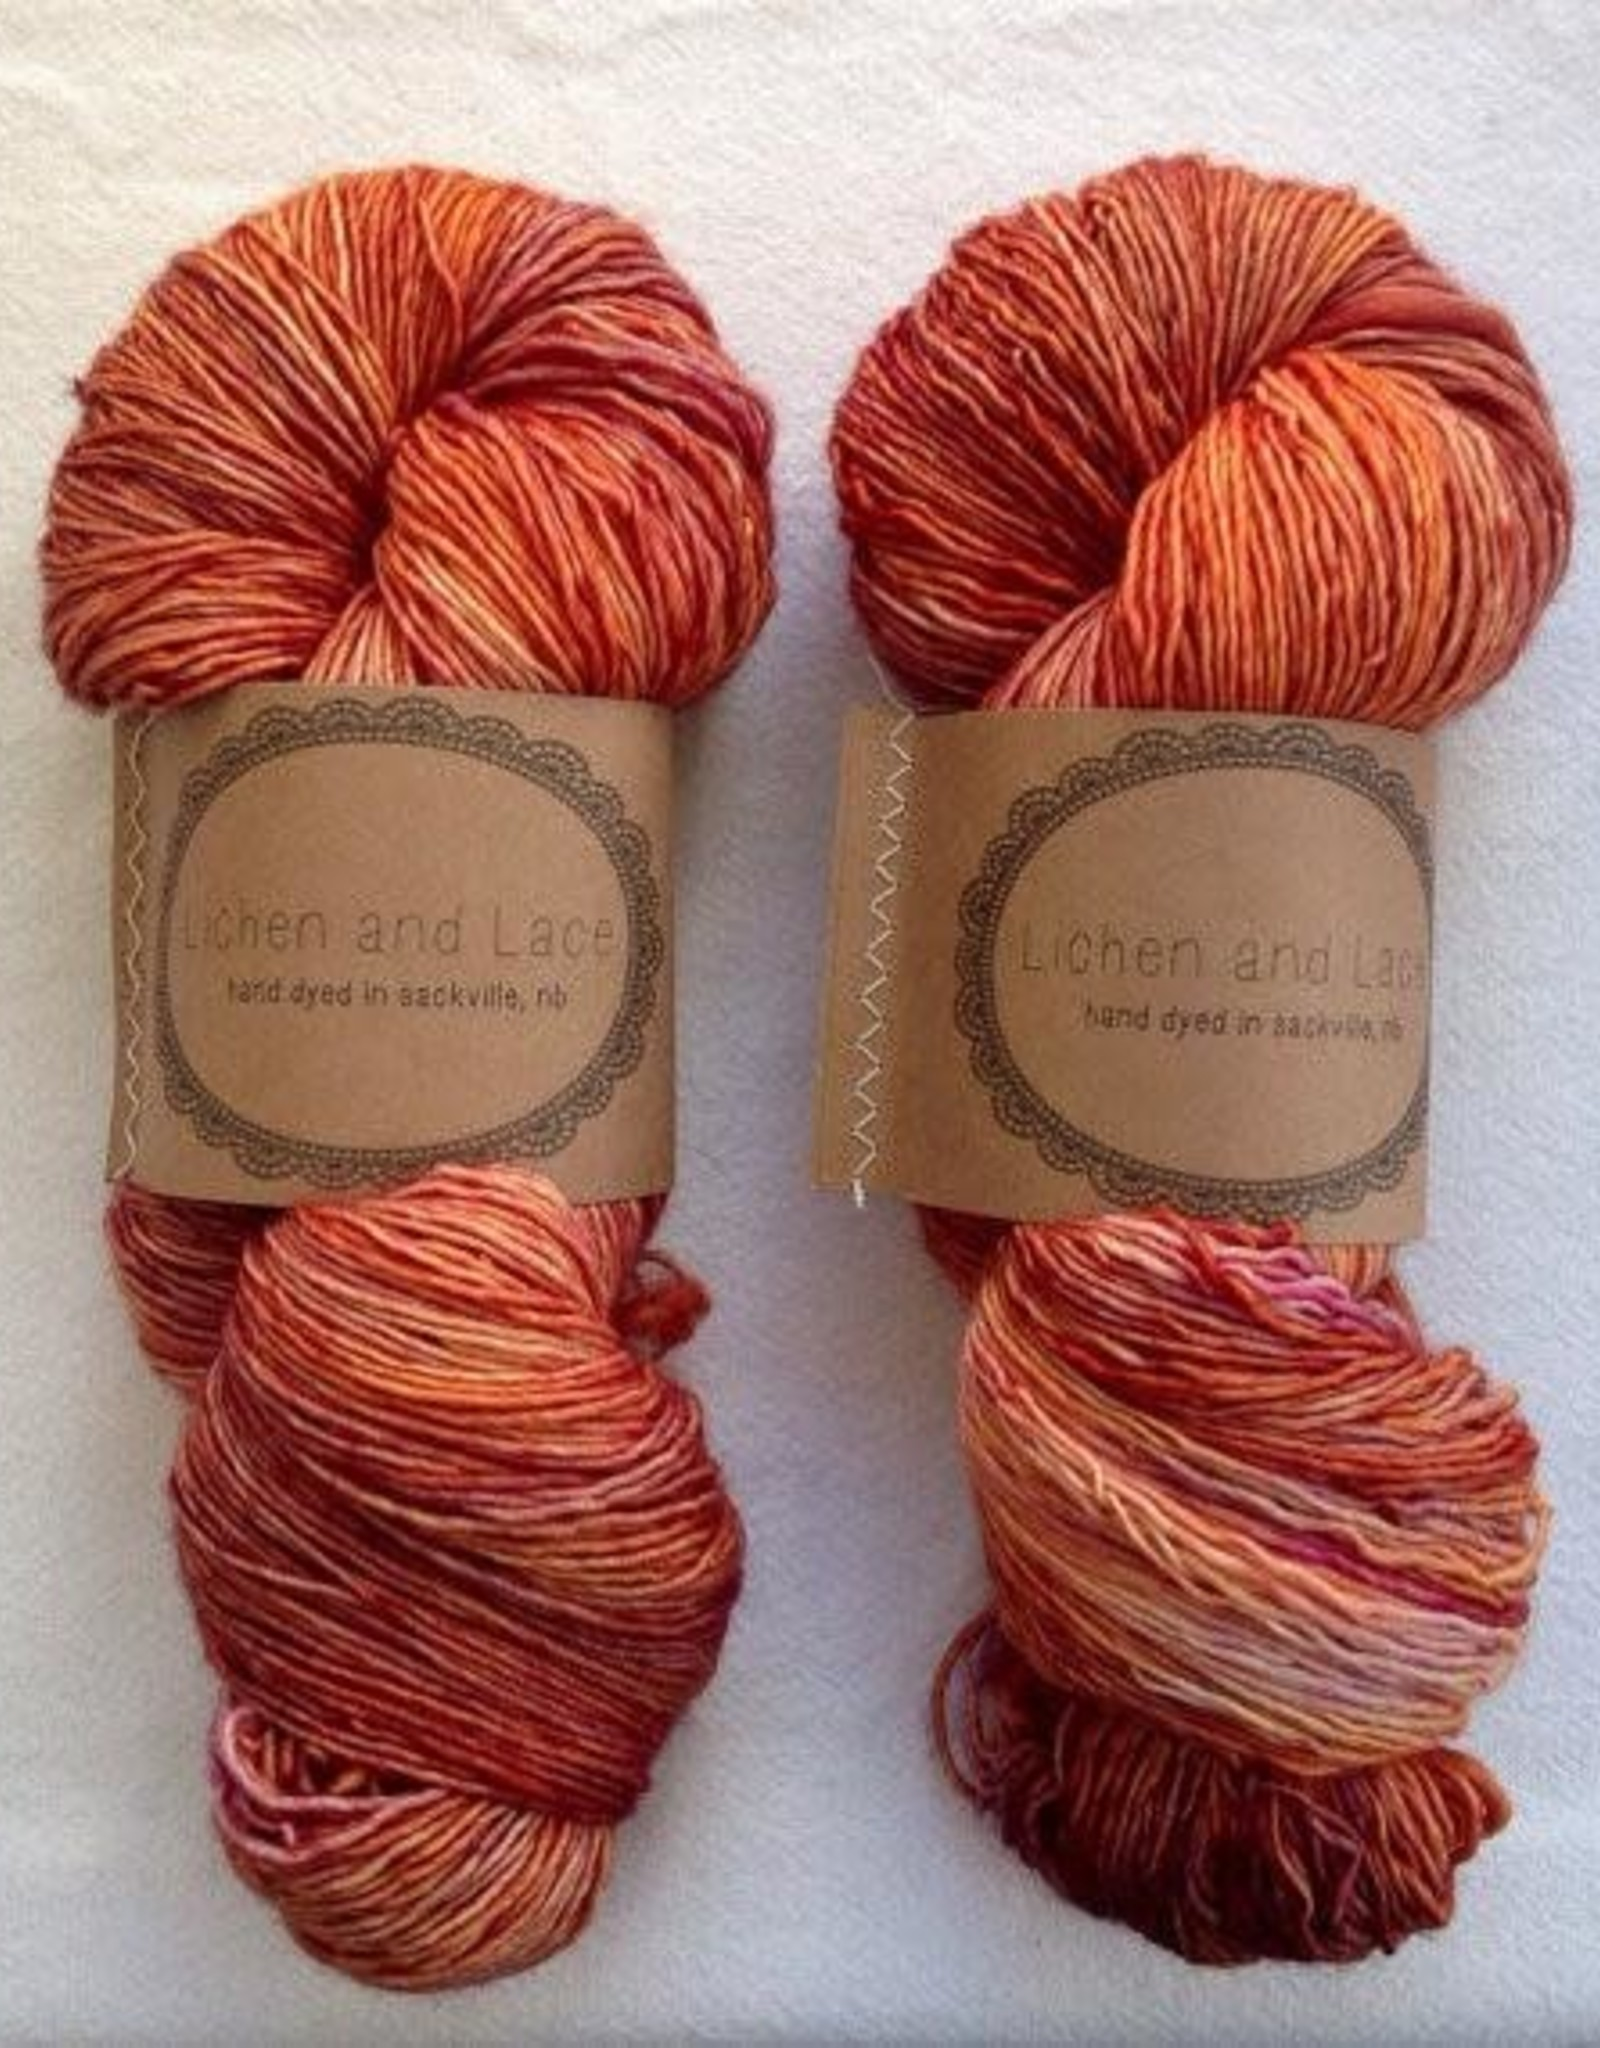 LL 80/20 Sock - Day Lily